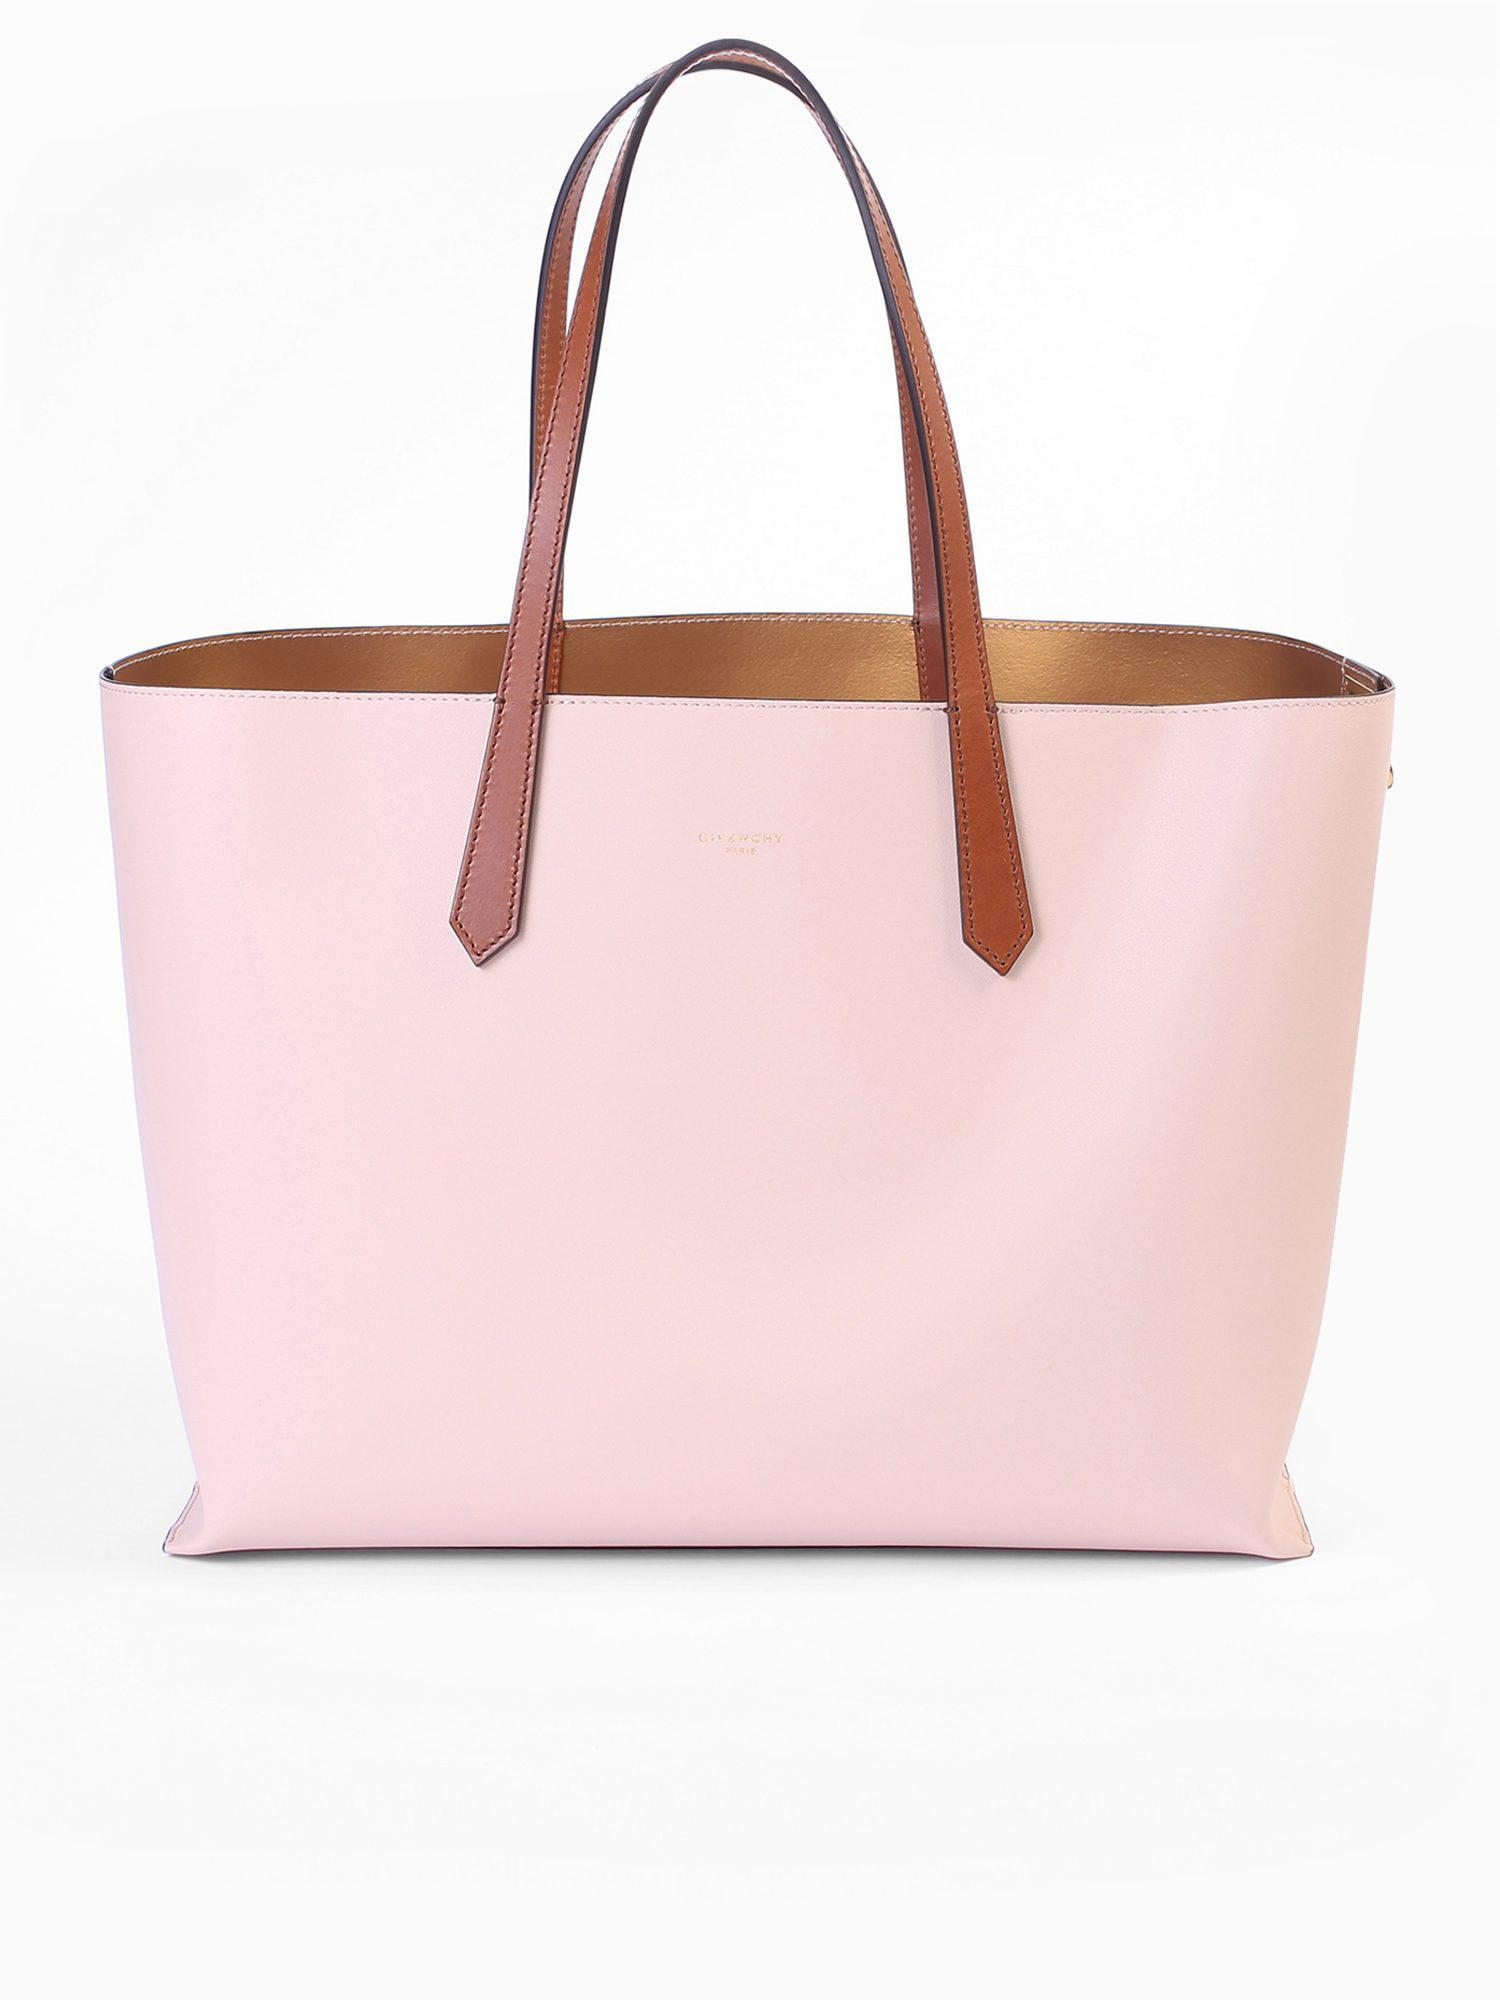 d74cdaeec755 Lyst - Givenchy Smooth Leather Tote Bag in Pink